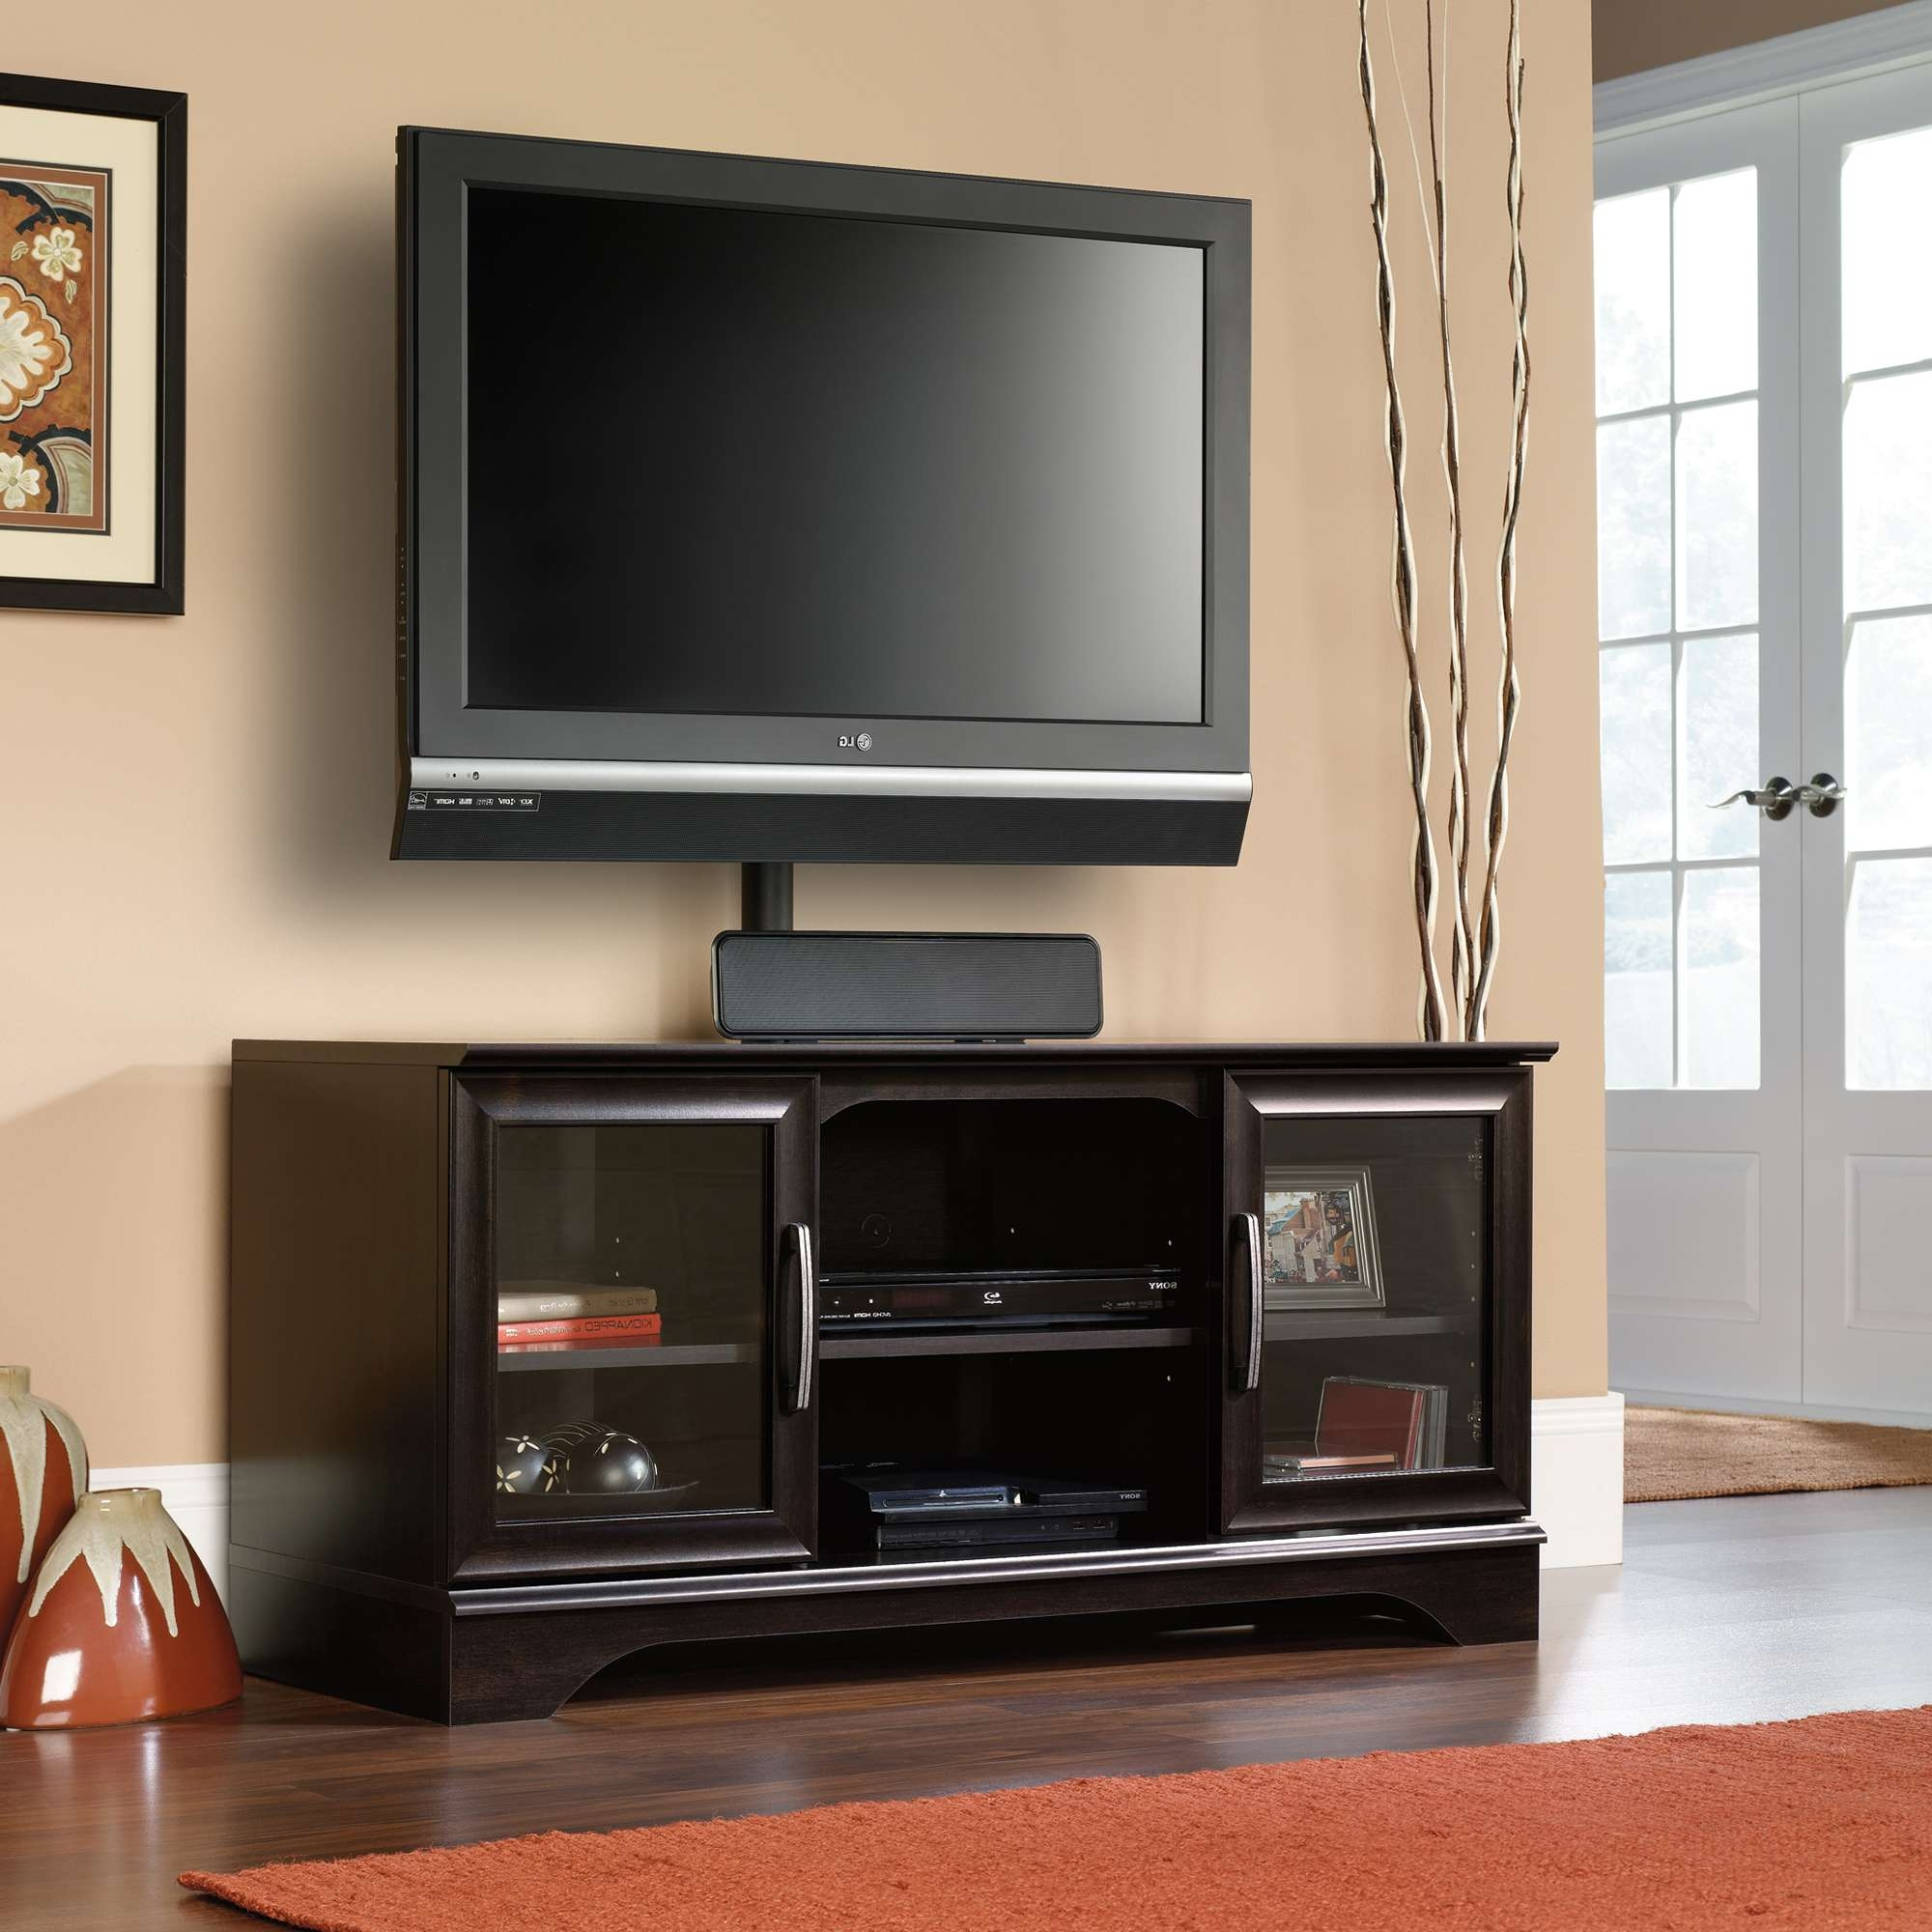 Wood Tv Standh Mount Solid Mountwood Swivel Storage Stands Flat Throughout Wood Tv Stands With Swivel Mount (View 15 of 15)